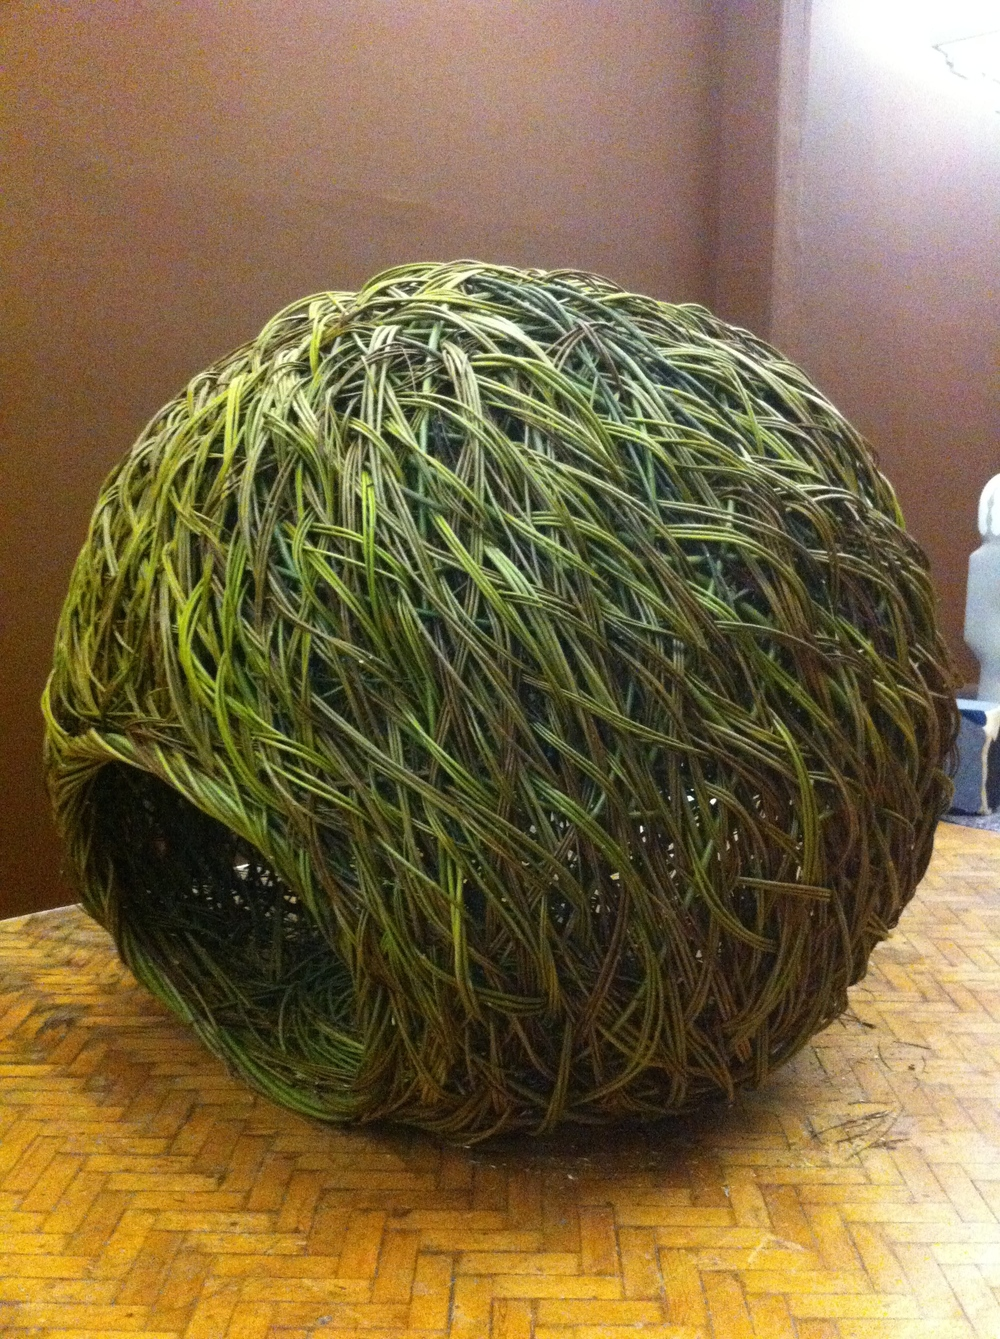 Some of Mel's willow sculpture.